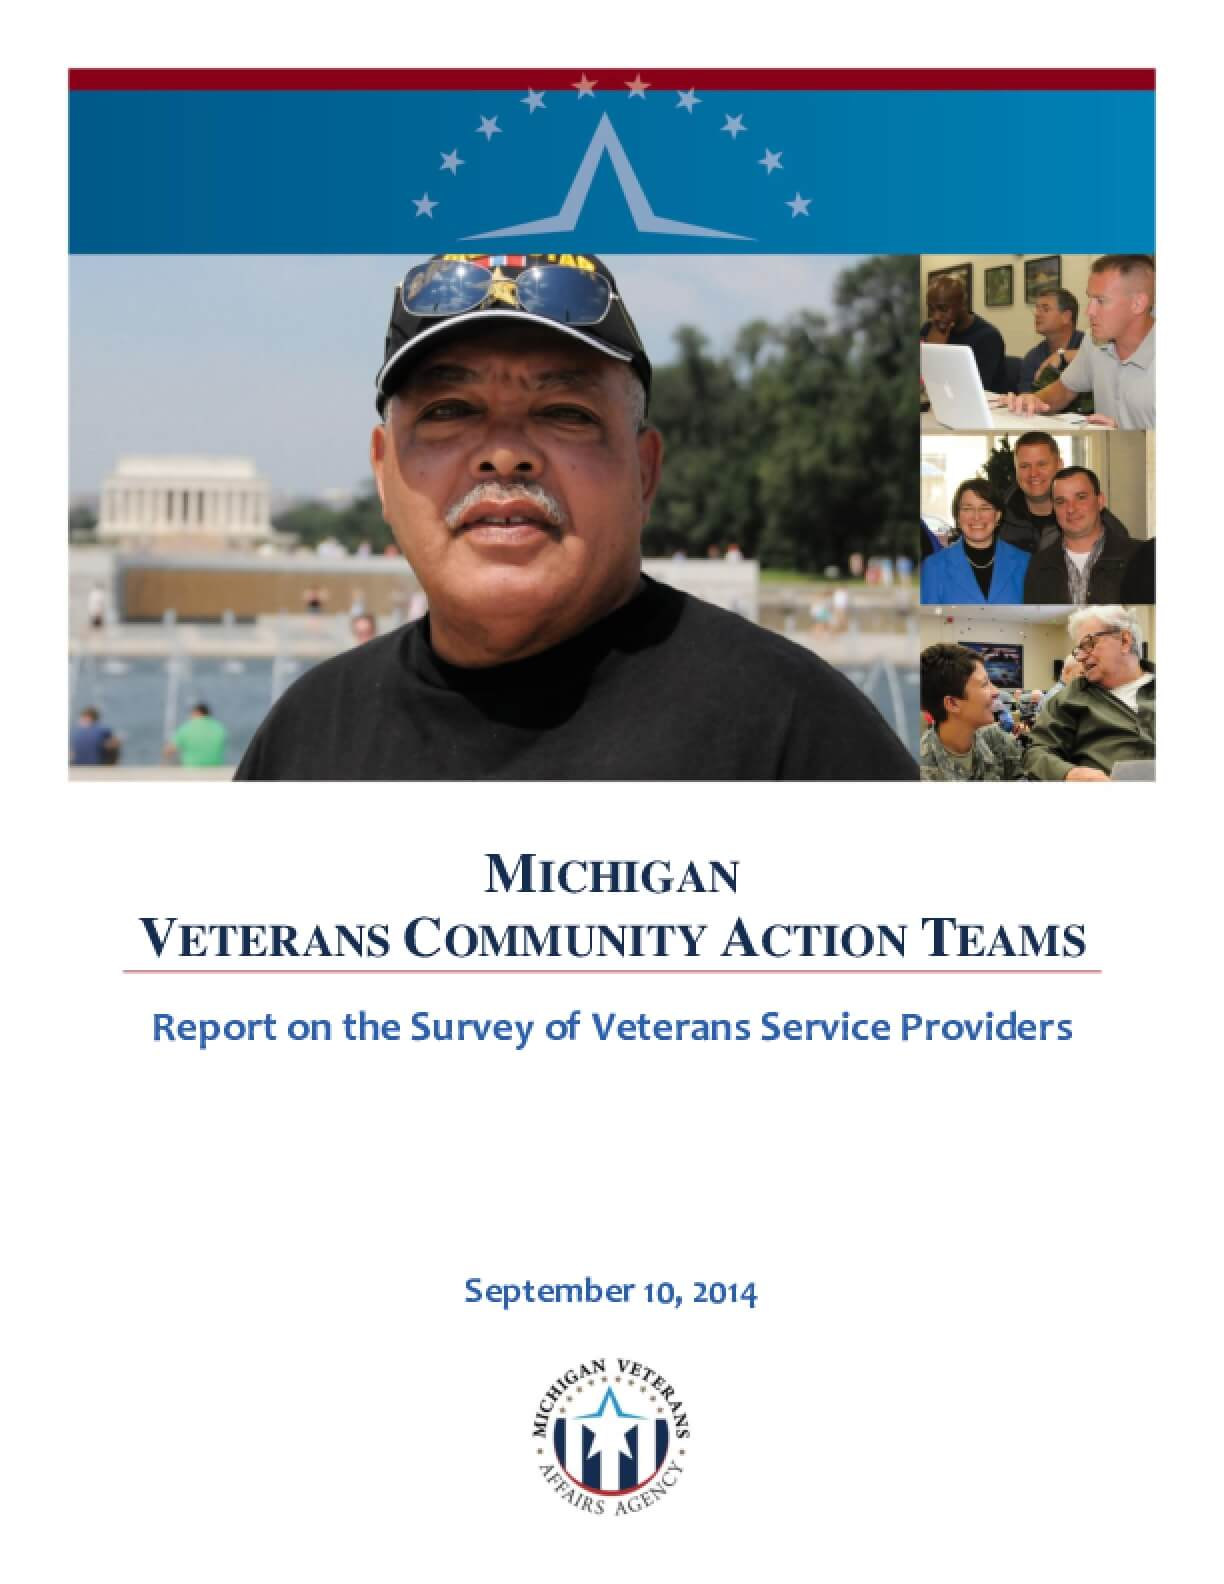 Michigan Veterans Community Action Teams: Report On The Survey Of Veterans Service Providers